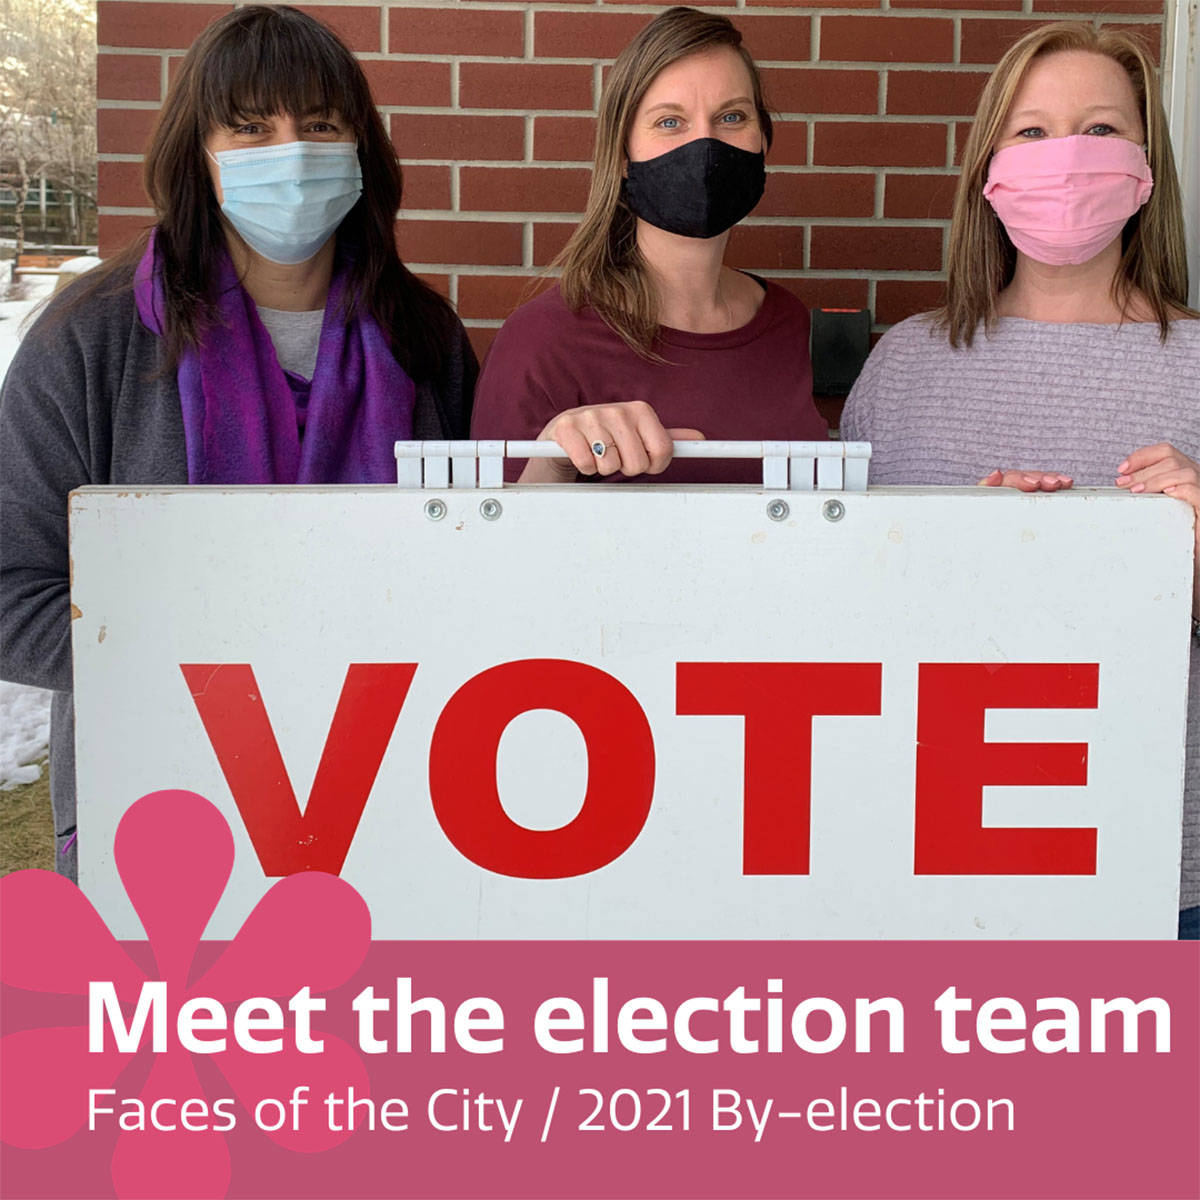 The City of Castlegar byelection team. L-R: Nicole Brown, Michelle Anderson and Tracey Butler. Photo: Submitted